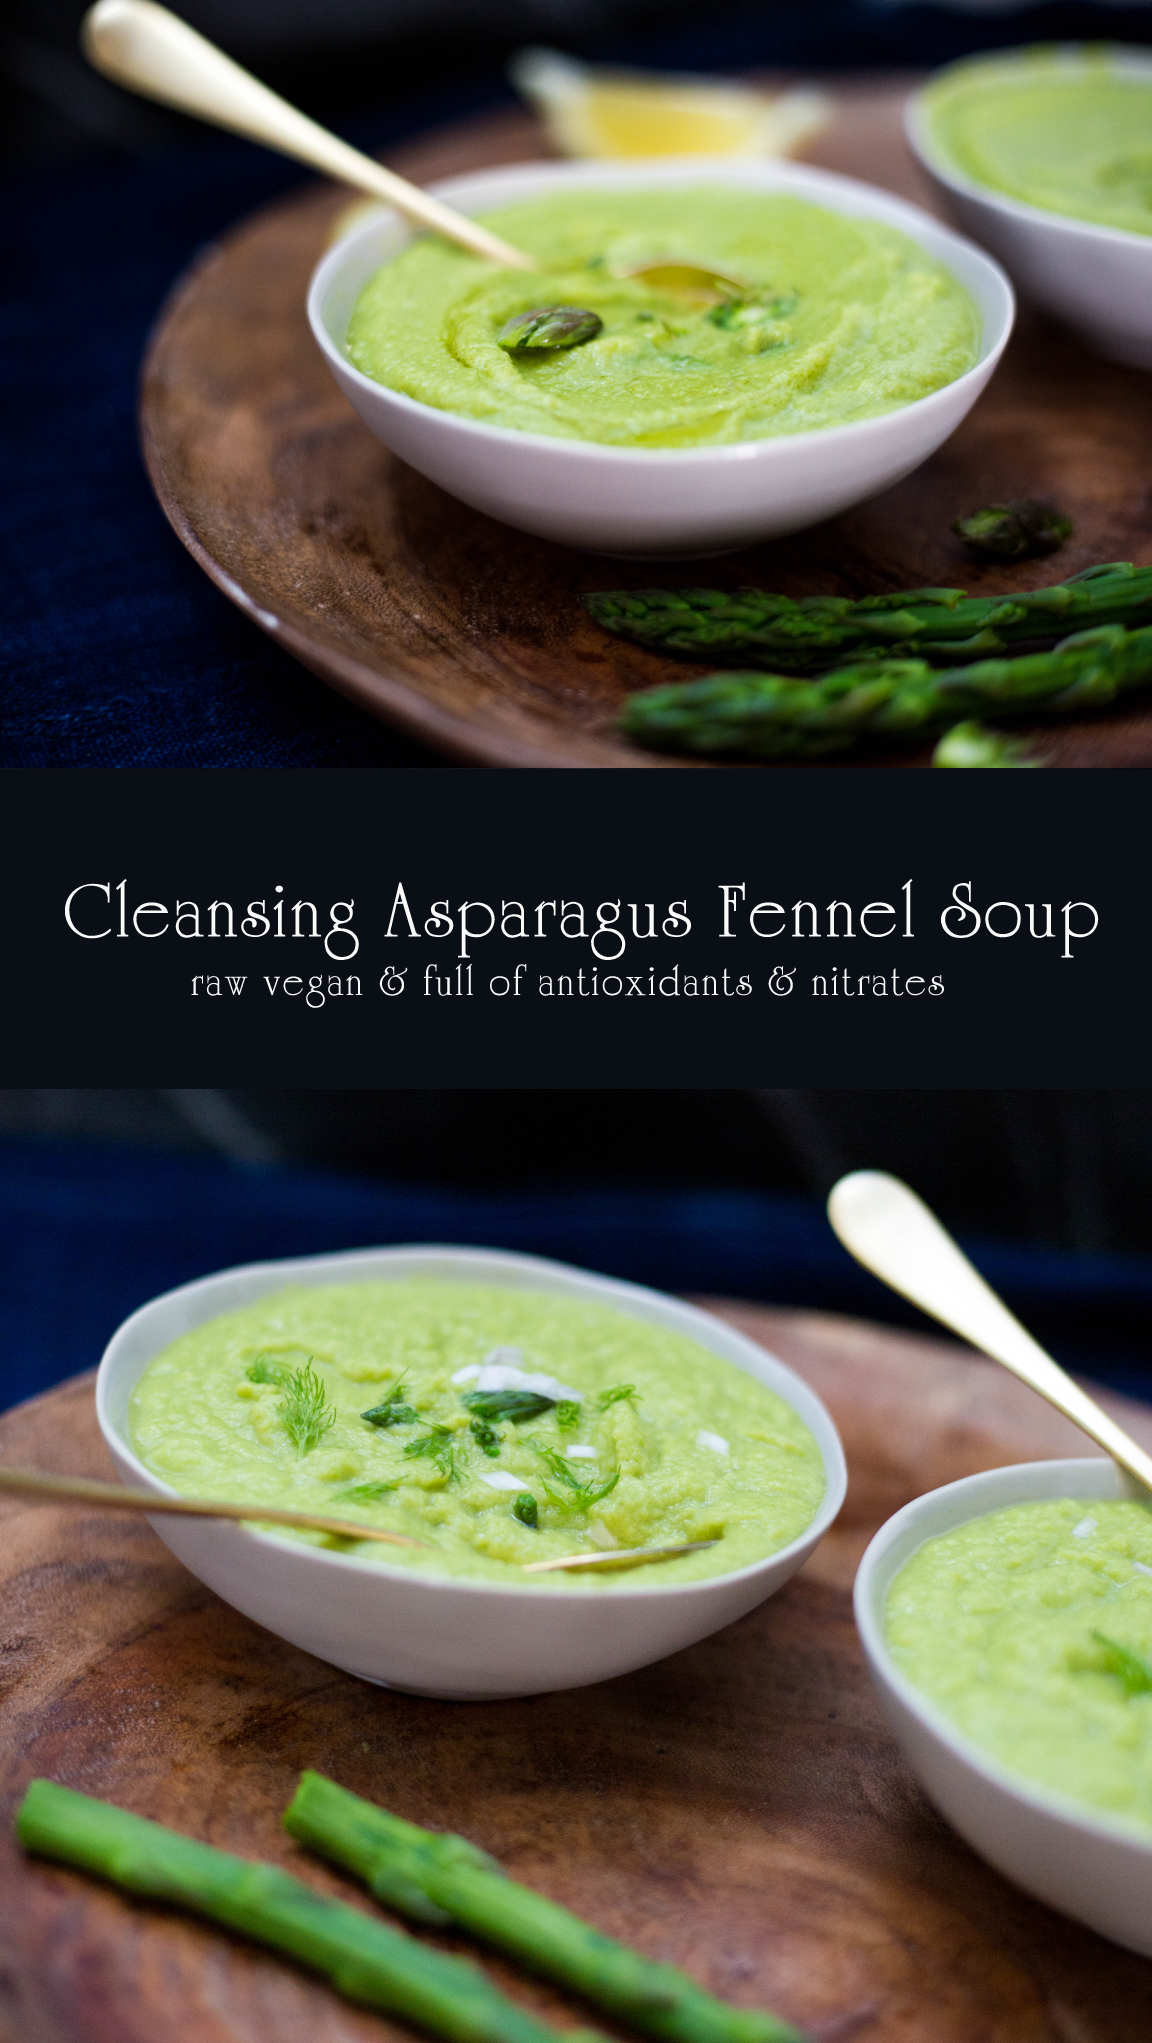 Cleansing Asparagus Fennel Soup